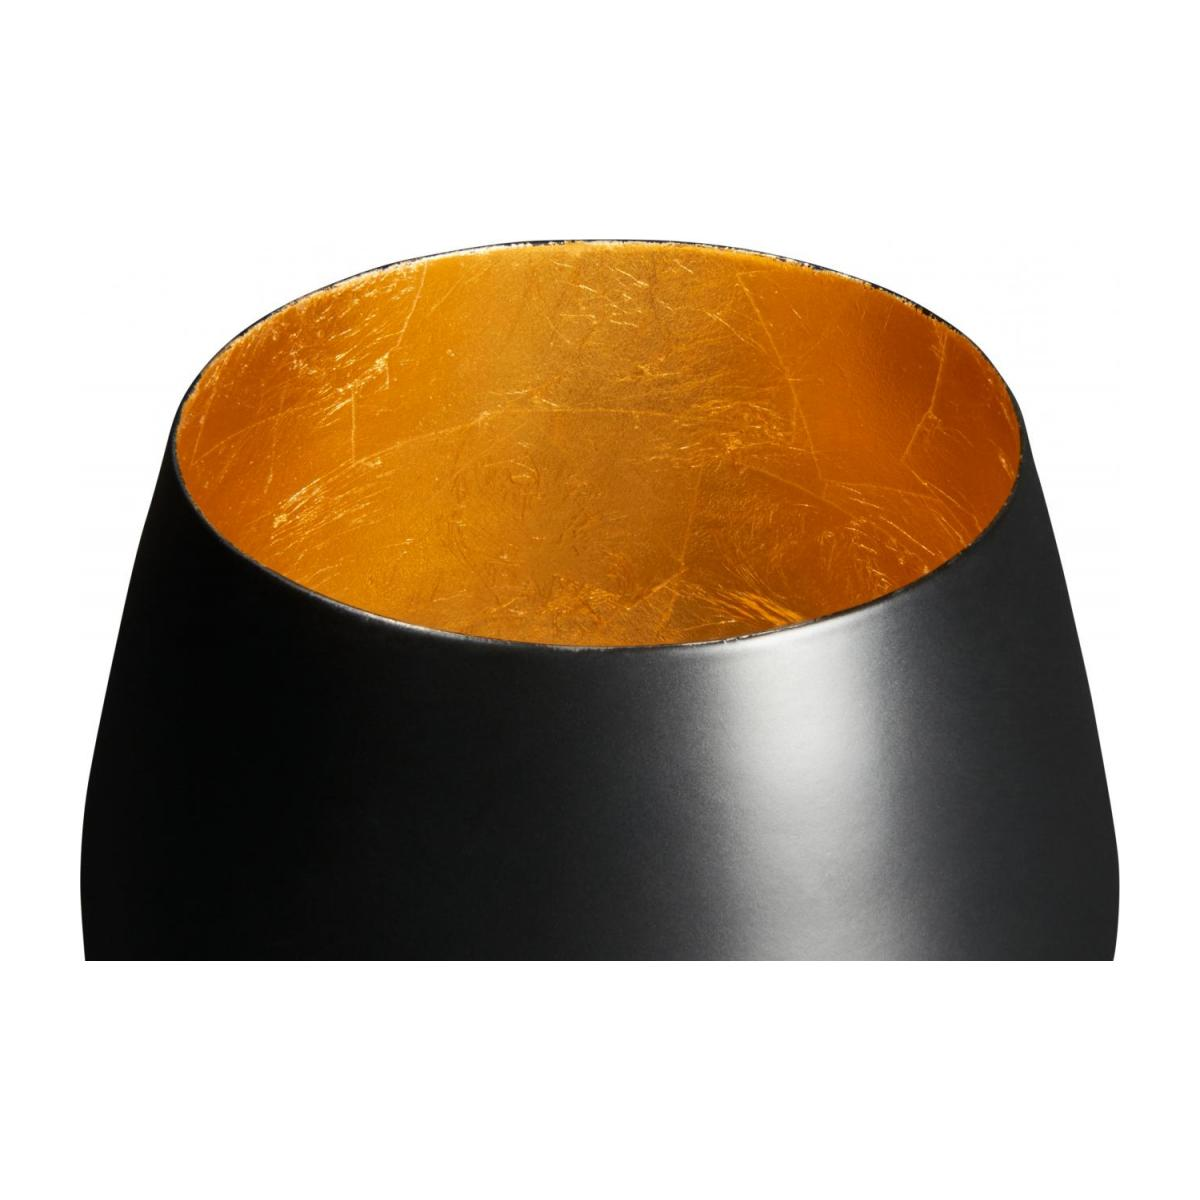 Candle holder made of metal, black and golden n°2